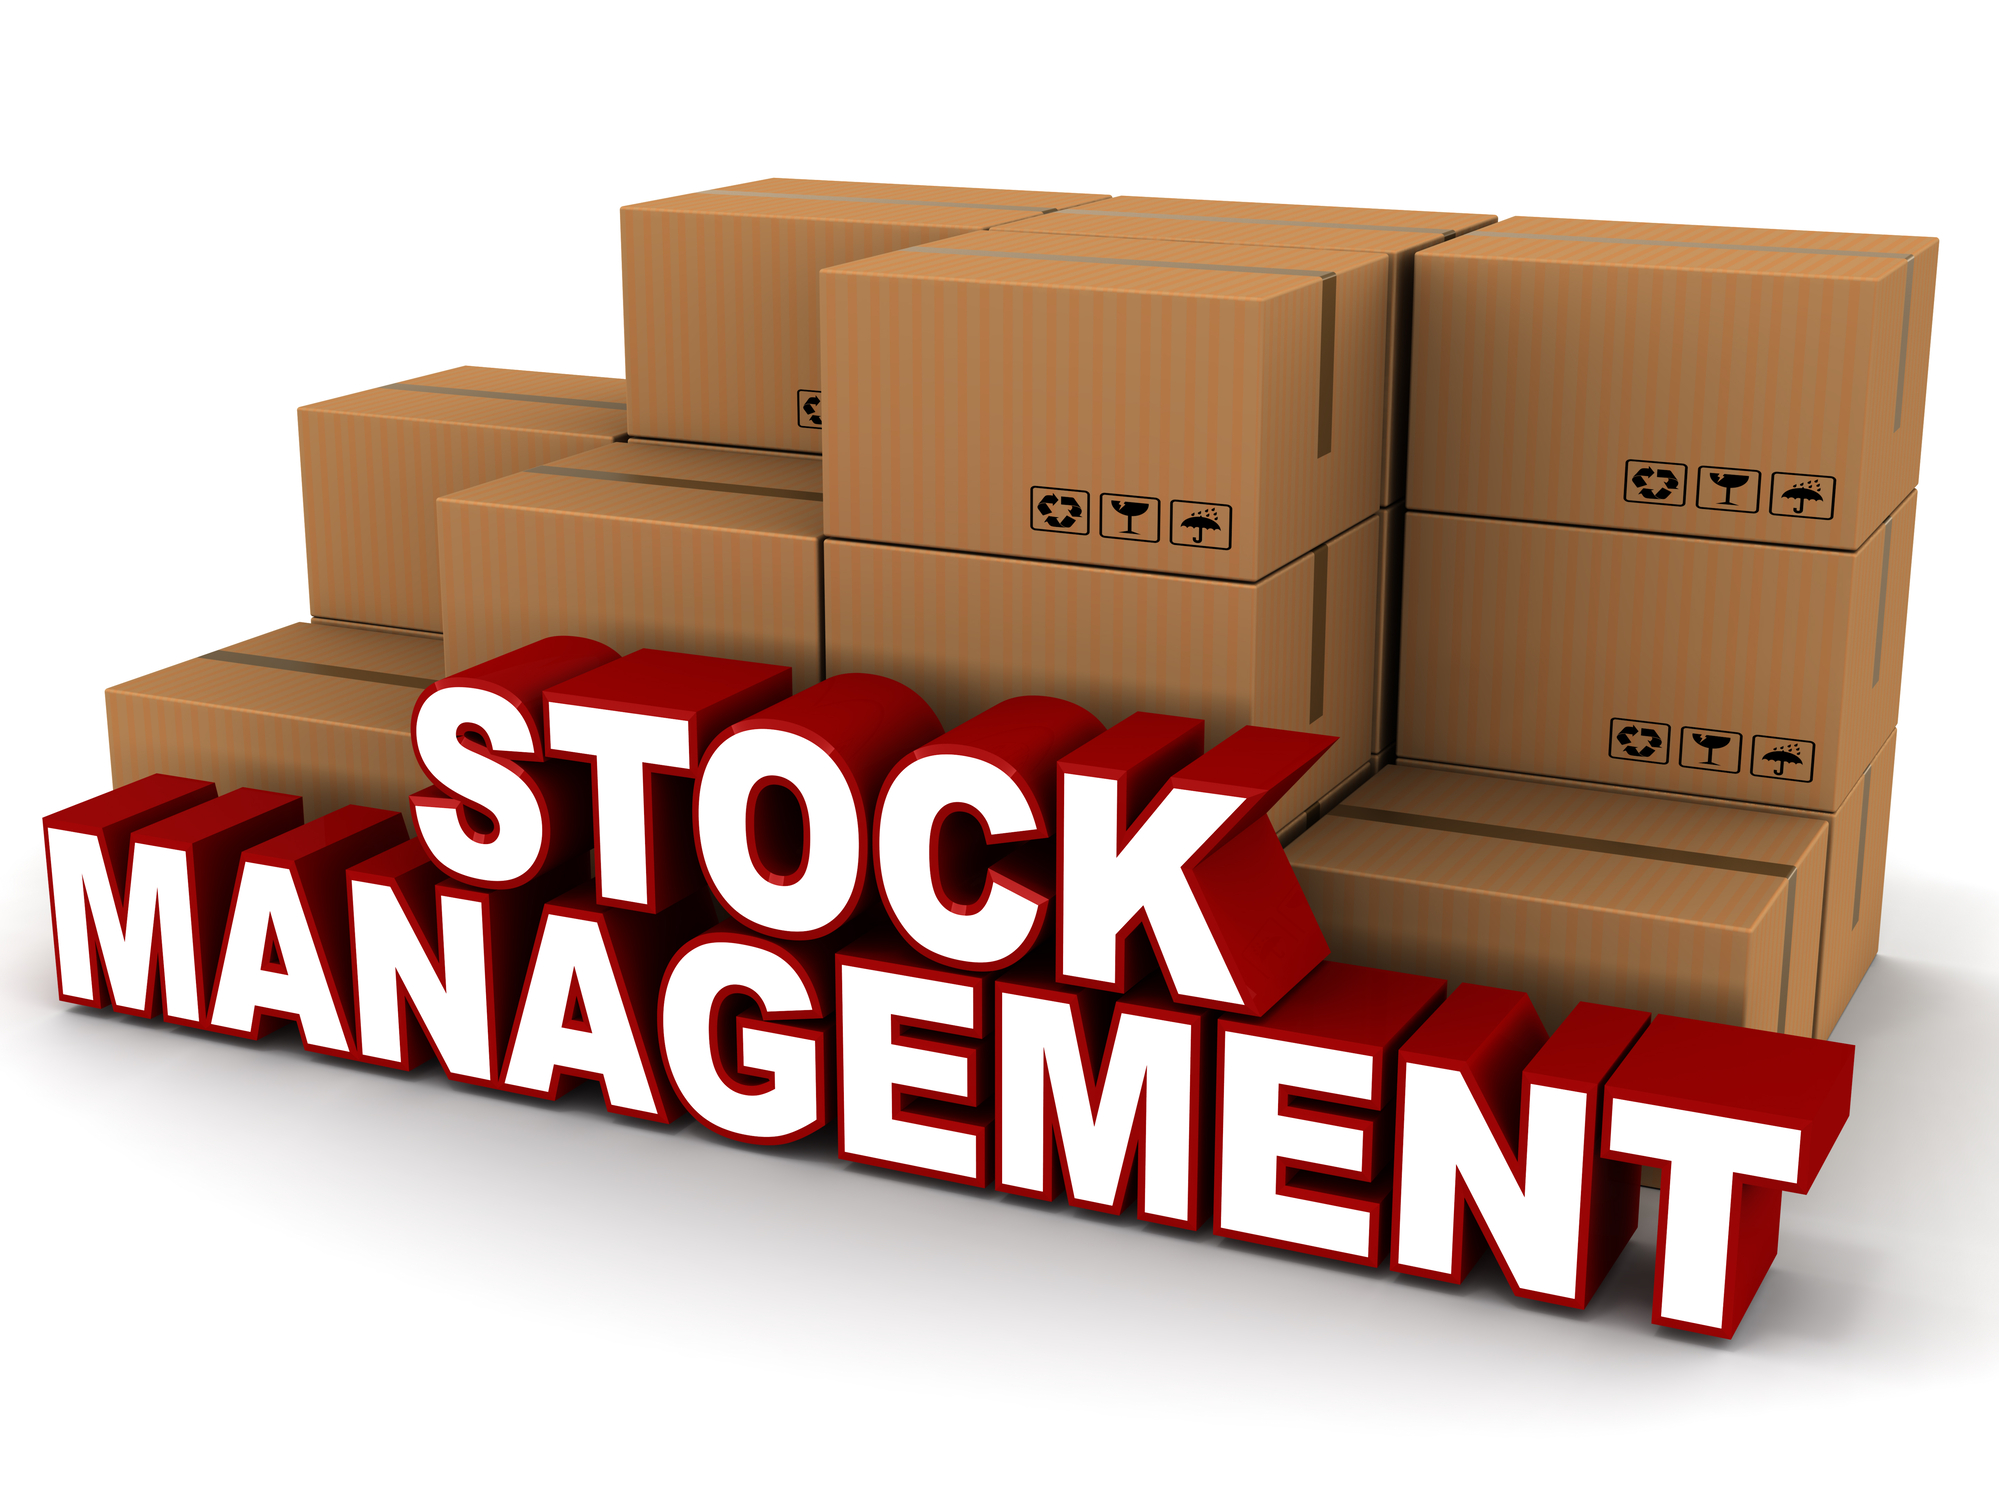 management of stock and fixed assets training